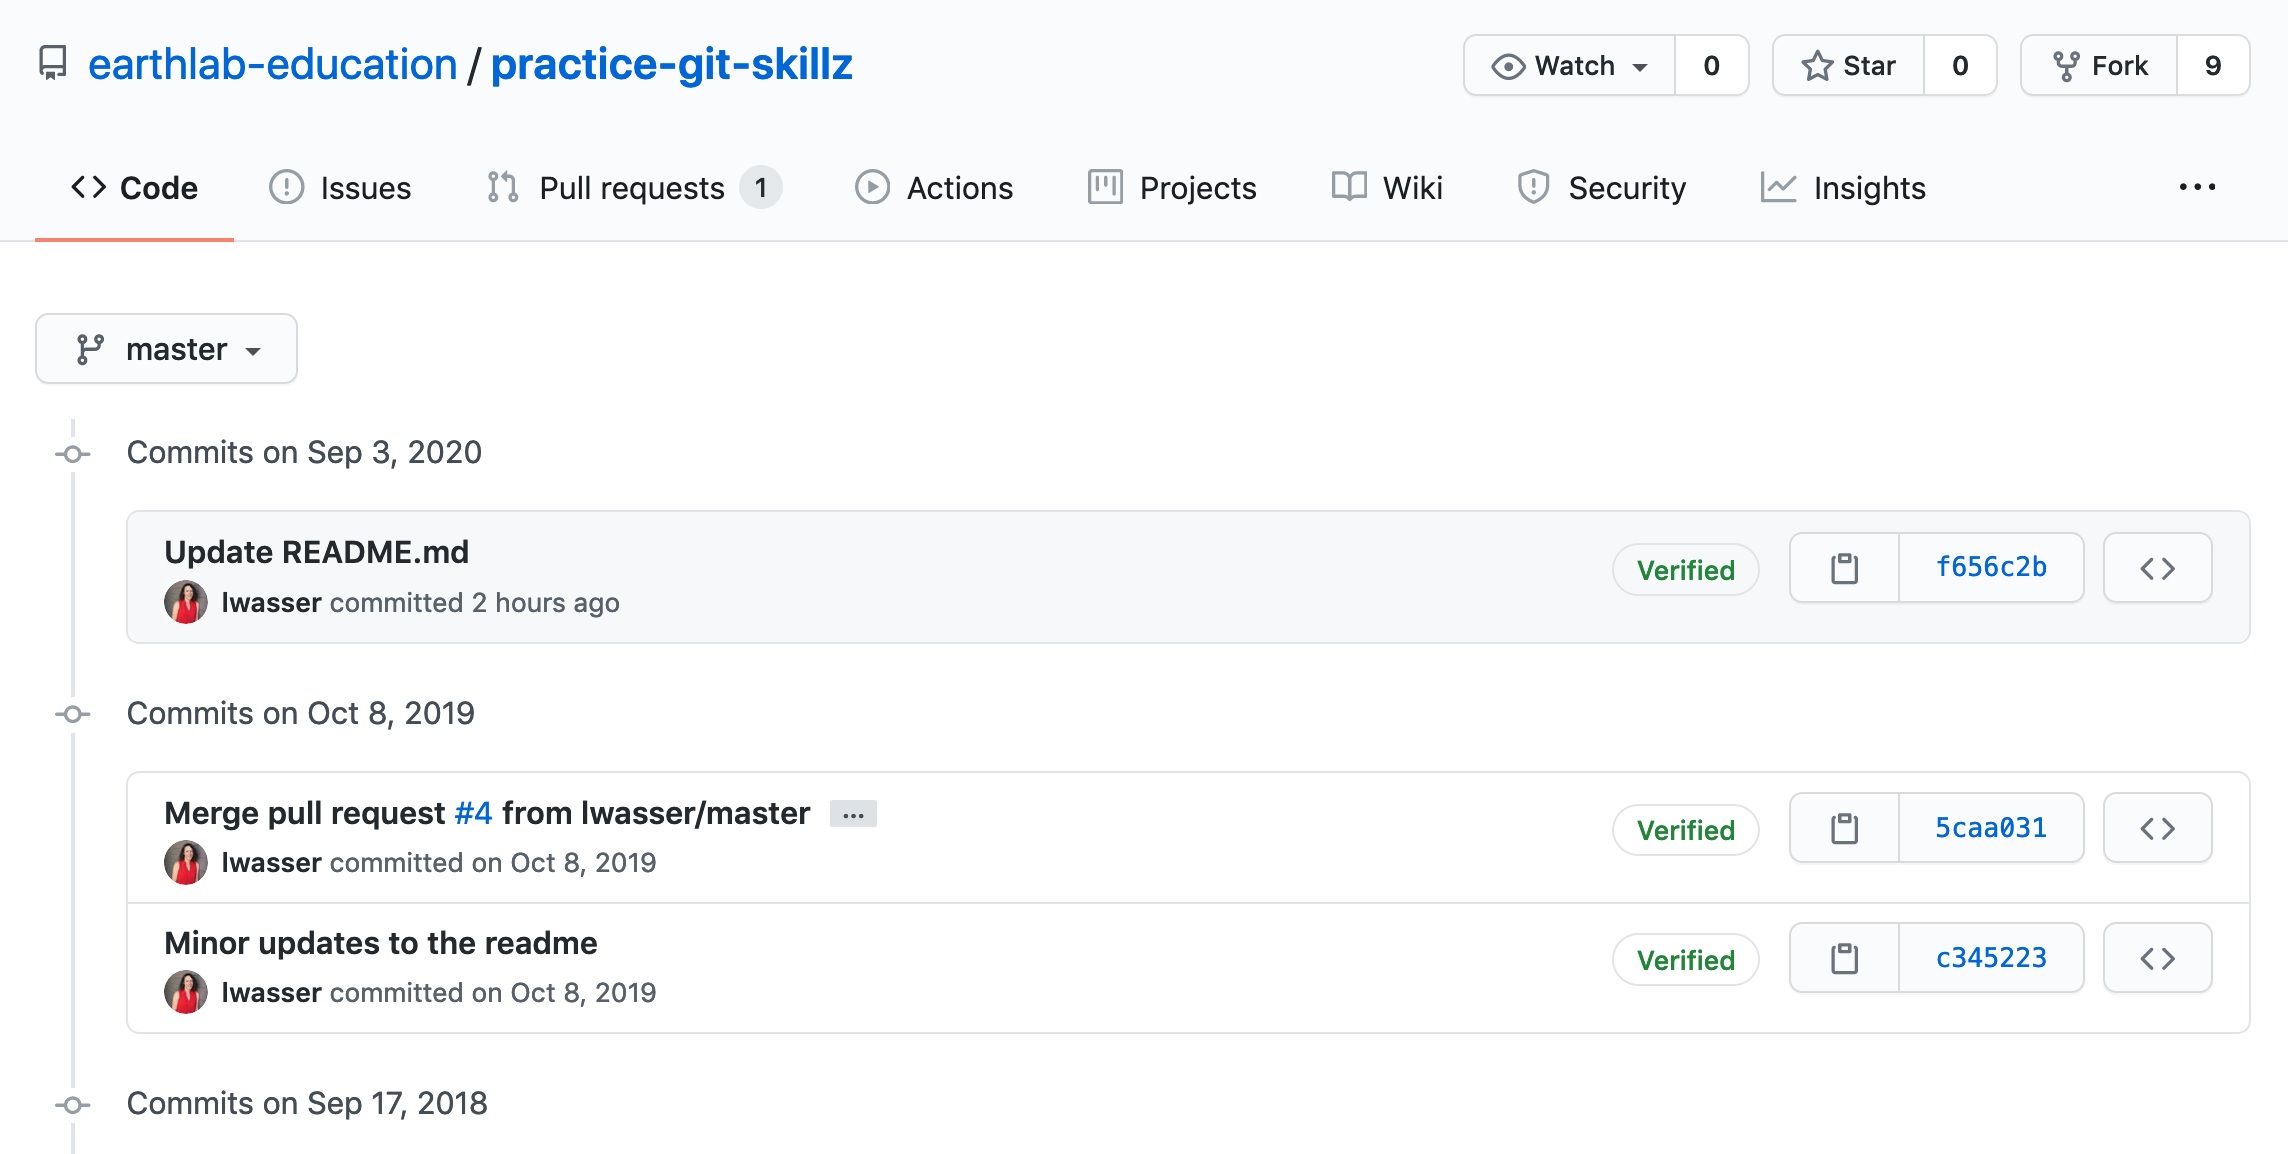 The full list of commits that have been pushed to a repository are available for you to see and review as needed on GitHub.com.